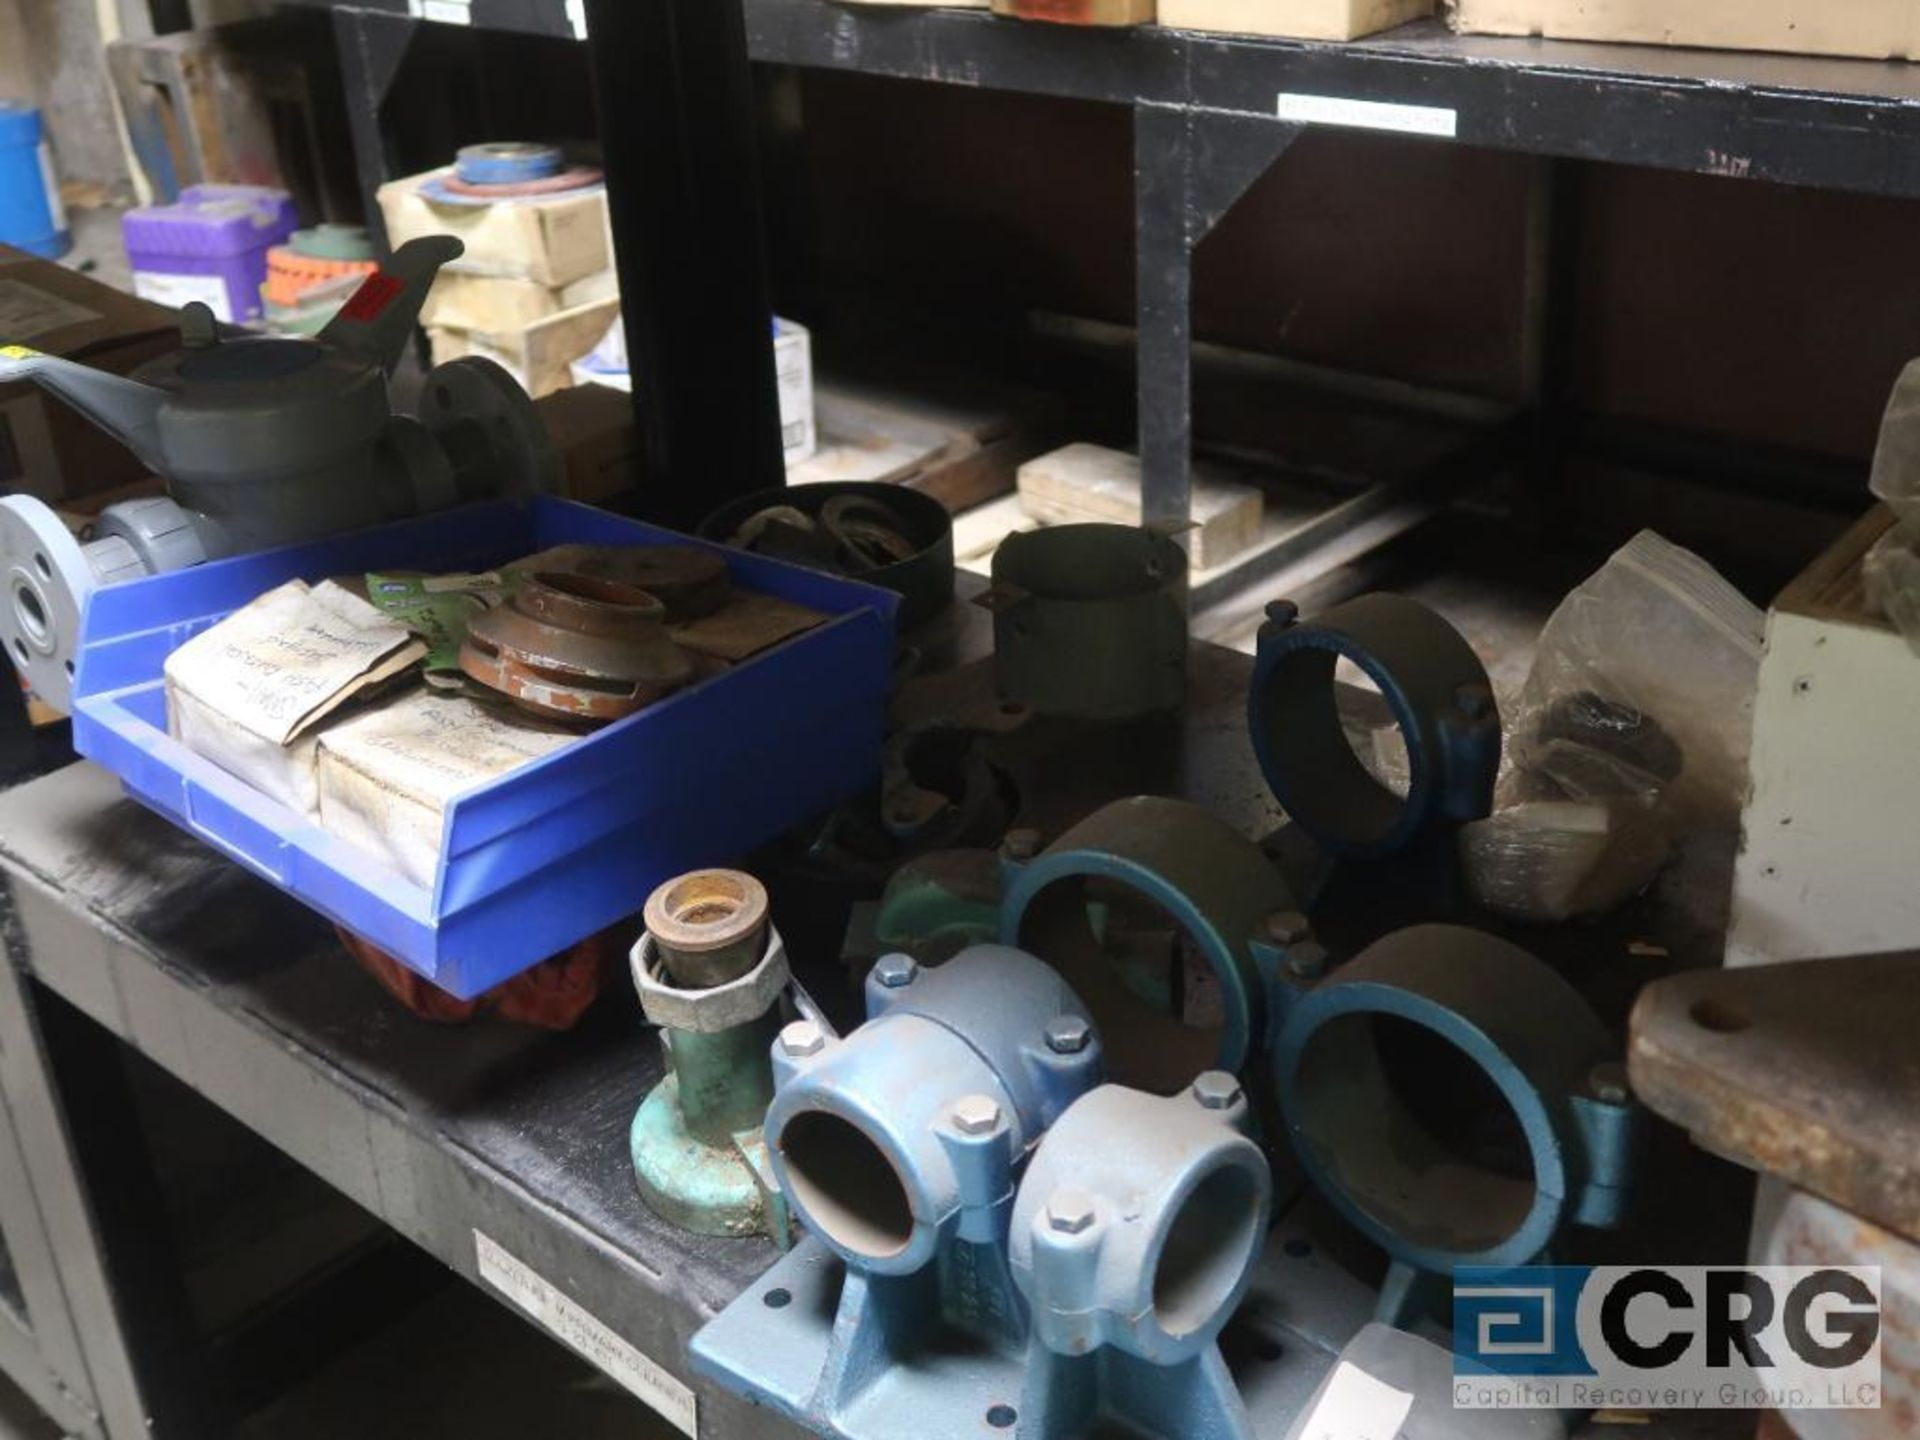 Lot of assorted parts on (4) sections and on wood shelving including motor, guards, housing, pump - Image 6 of 20